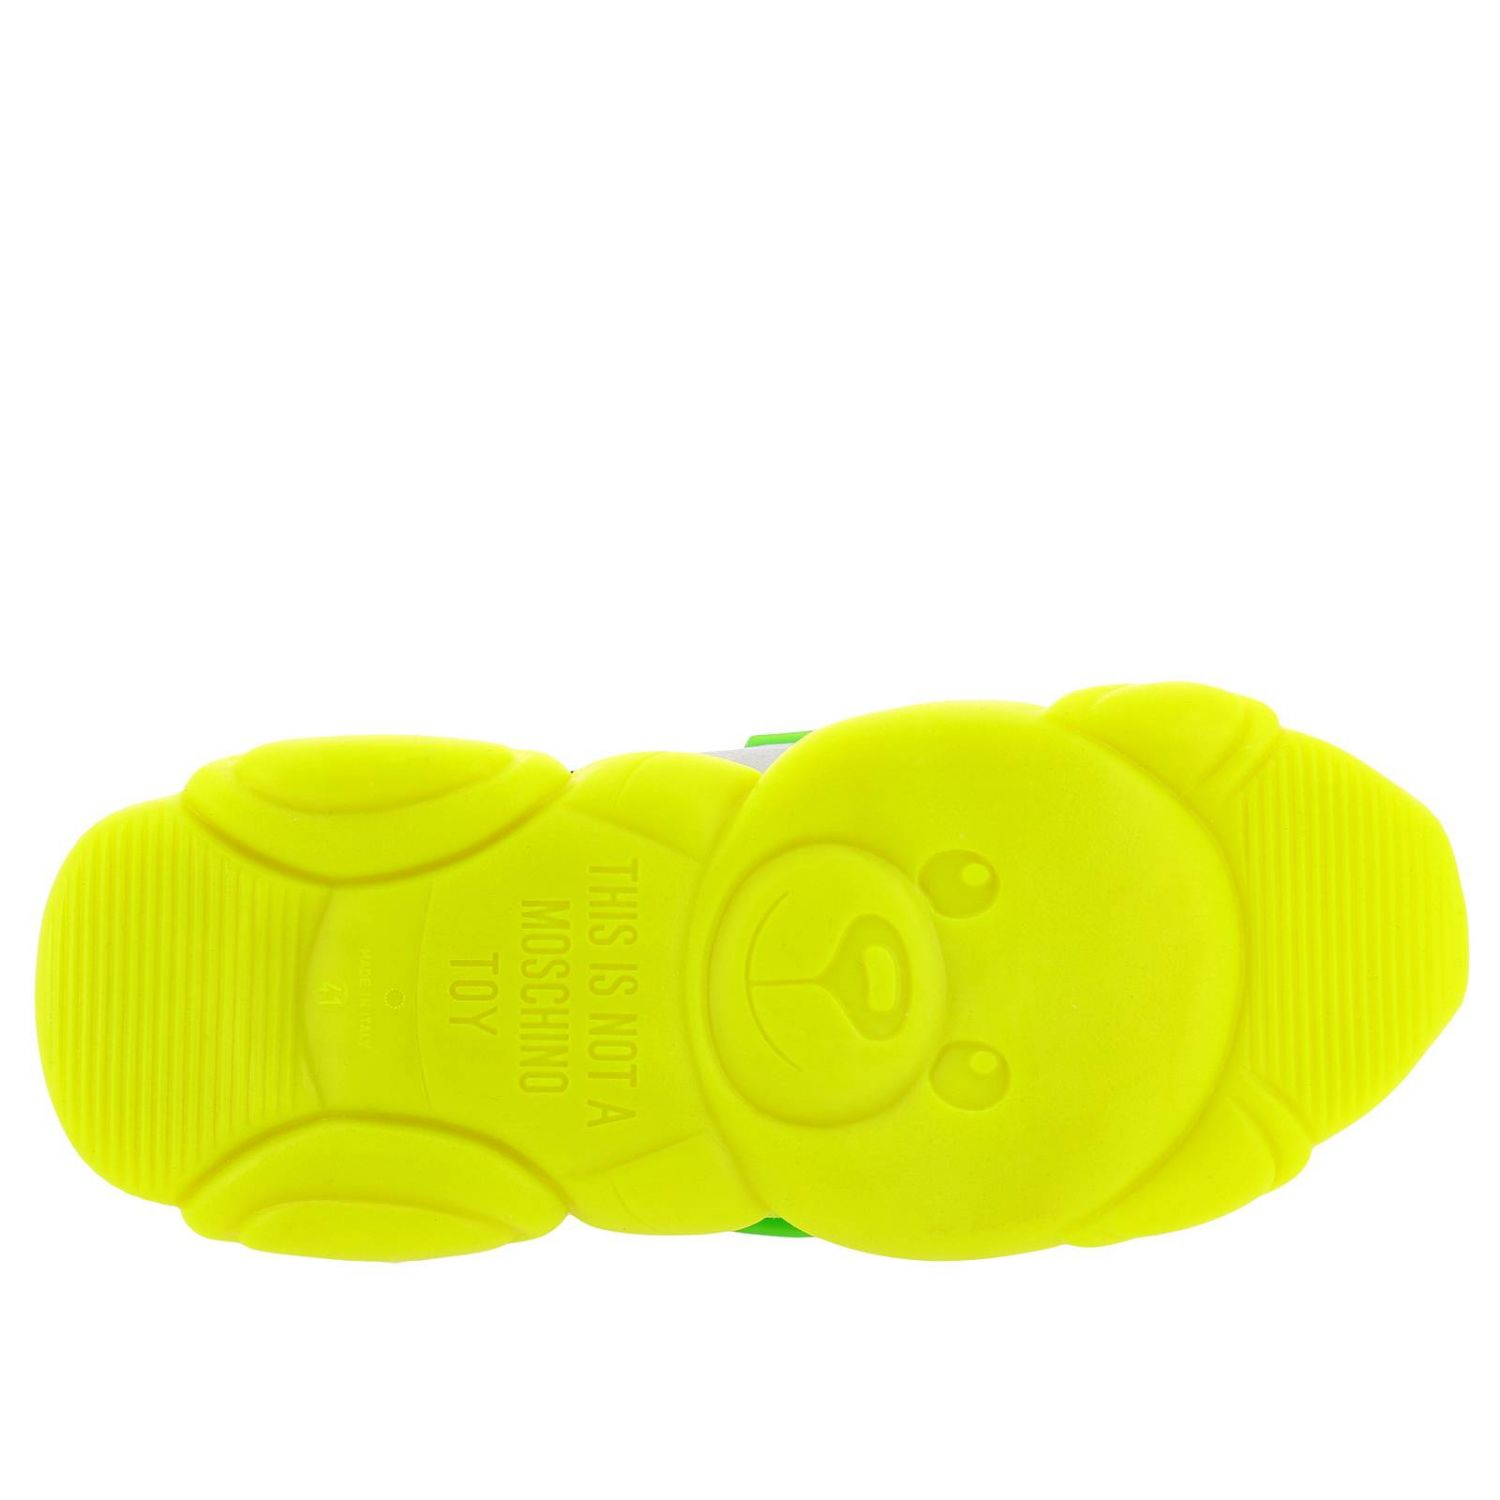 Sneakers Moschino Couture Special Edition Teddy Fluo giallo 5